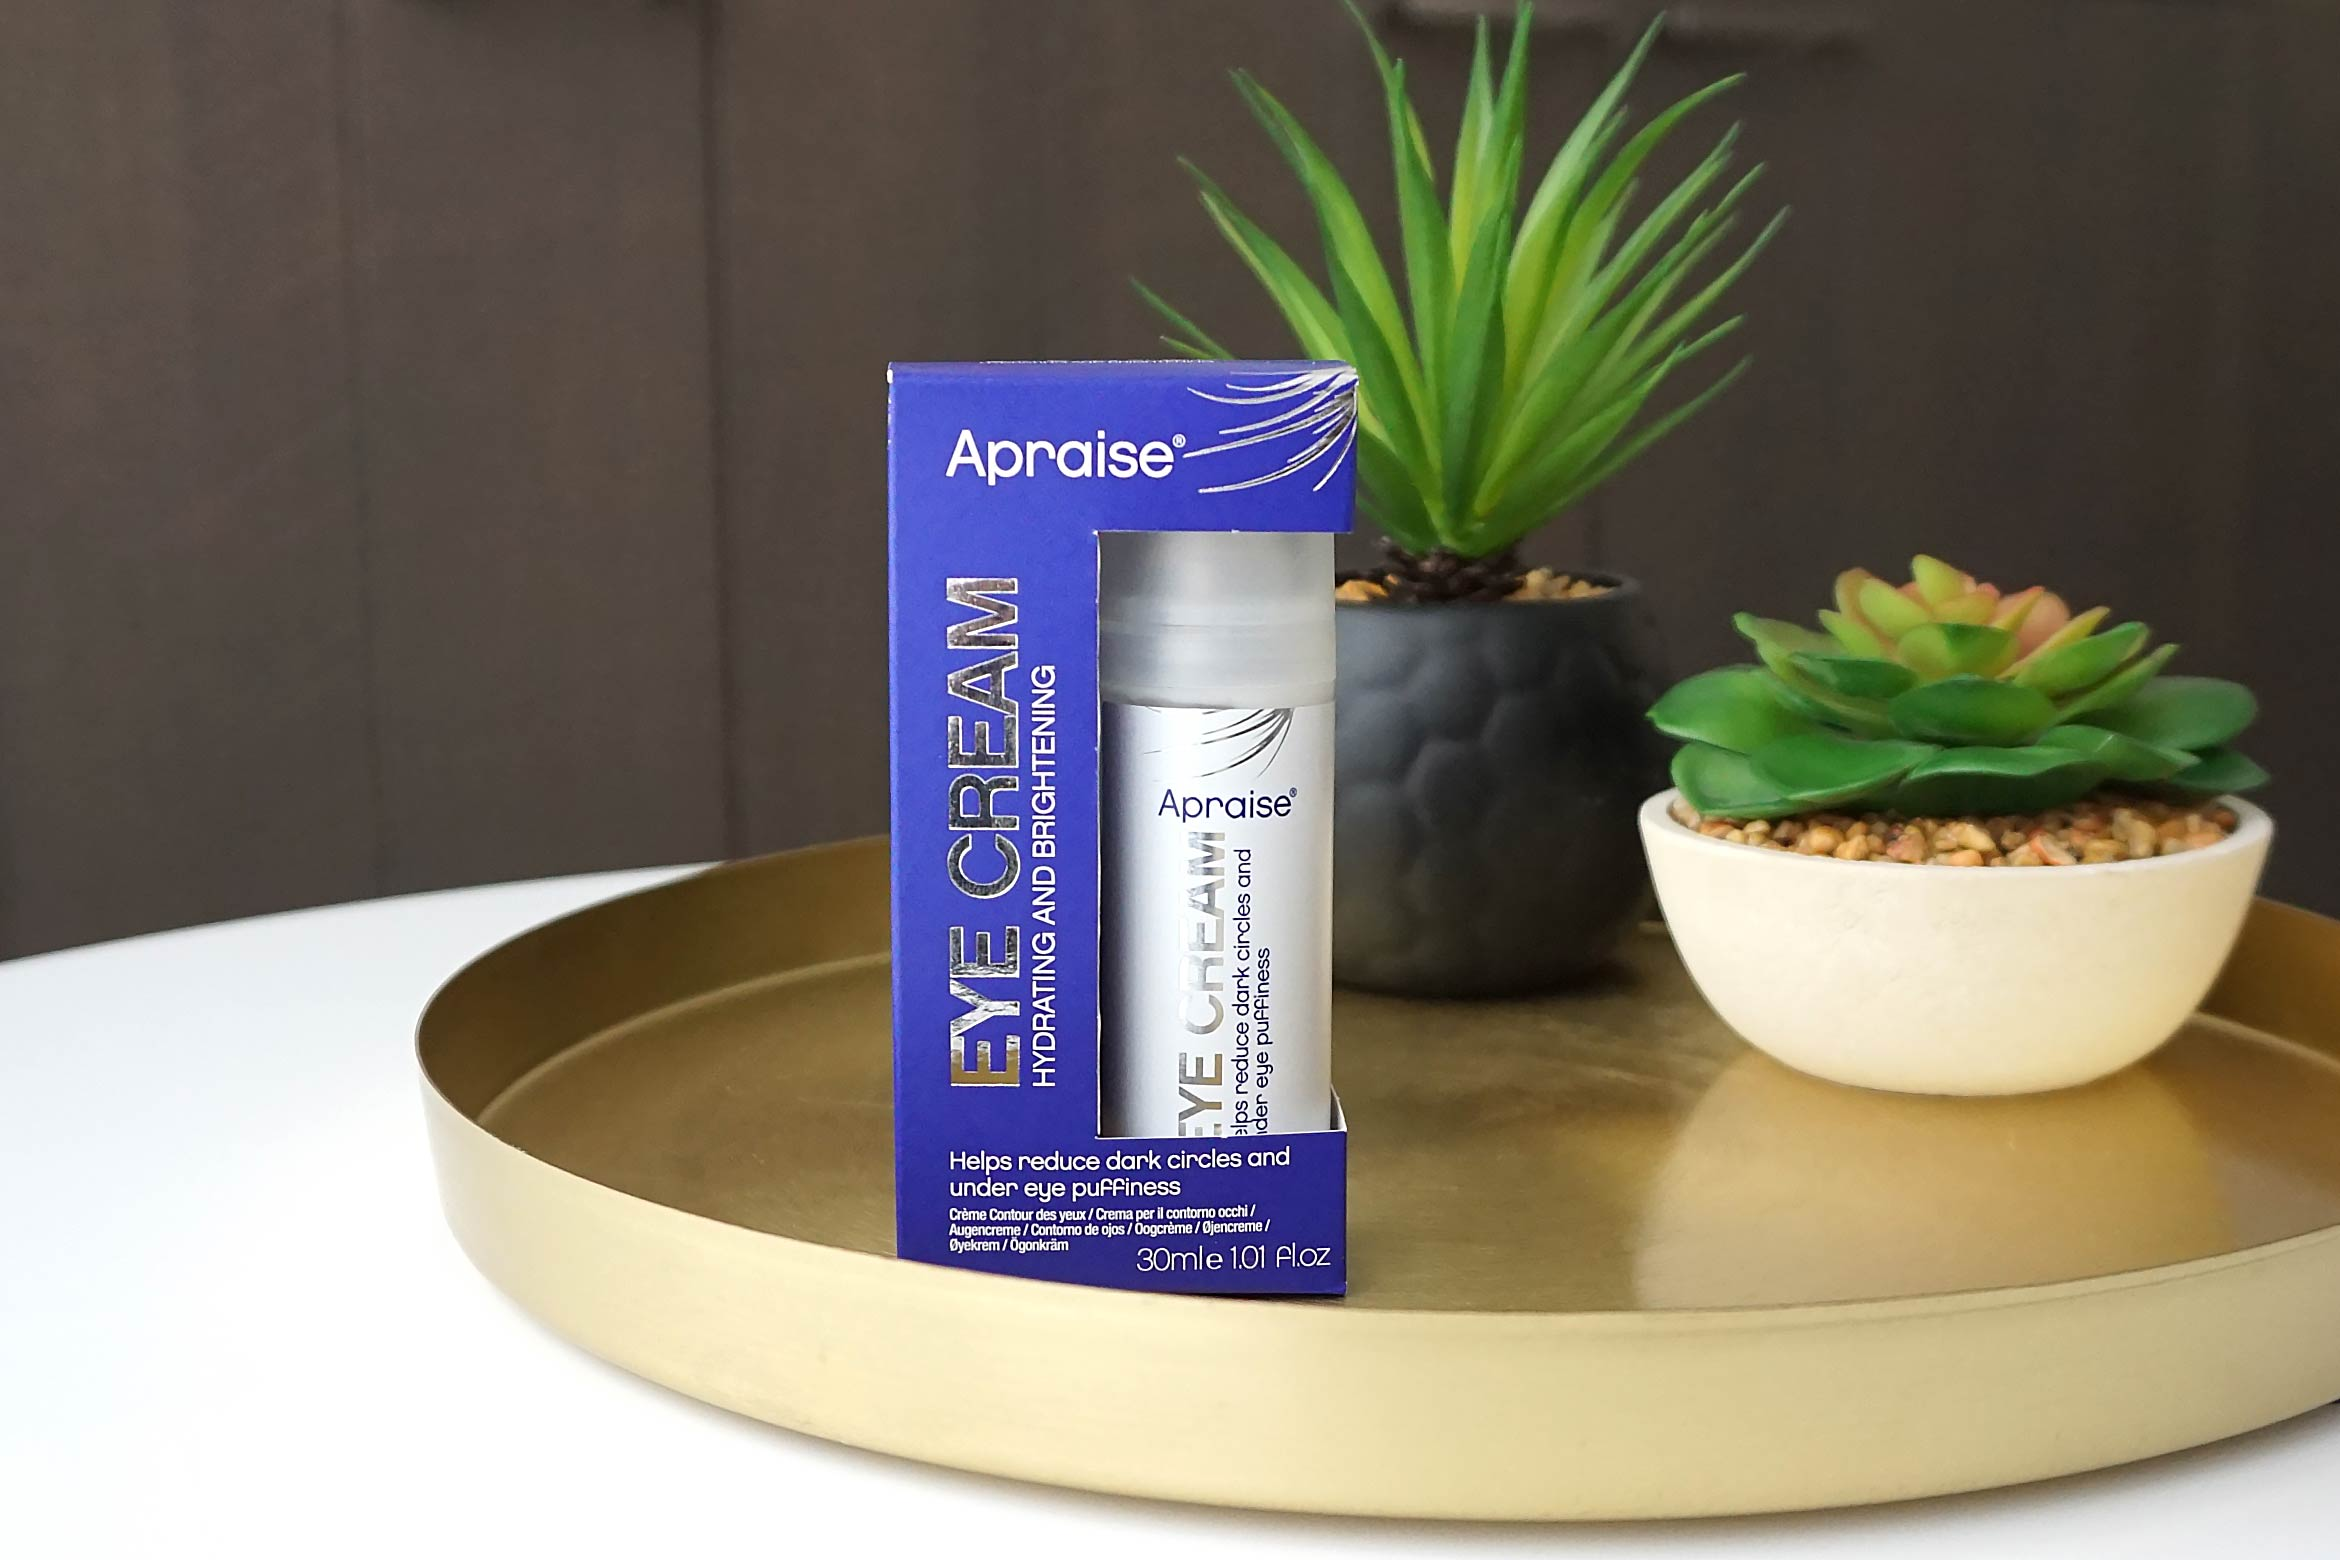 apraise-eye-cream-review-4